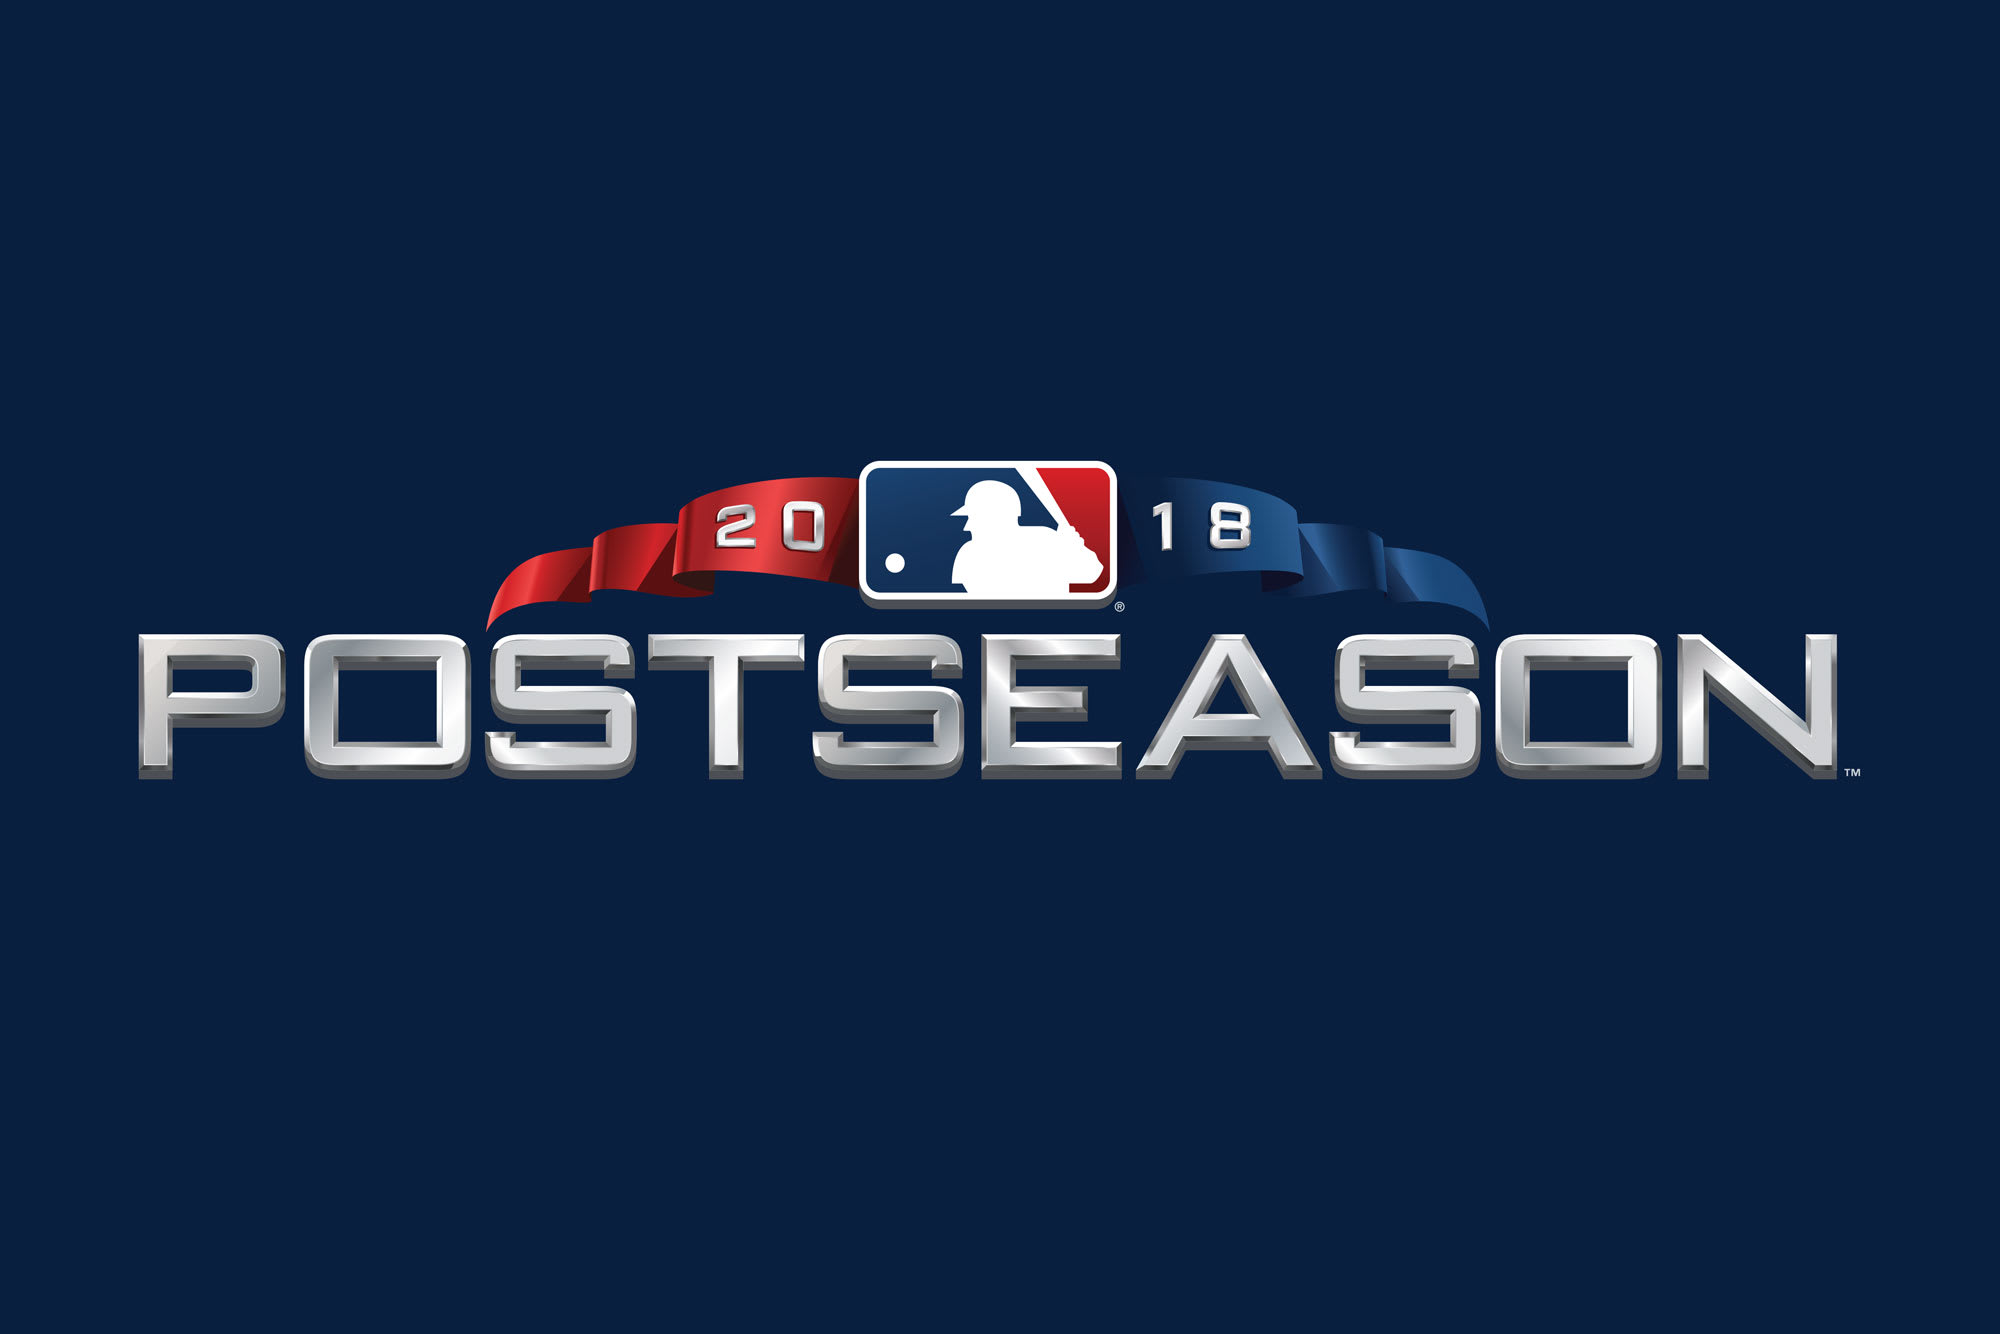 2018 MLB Postseason logo